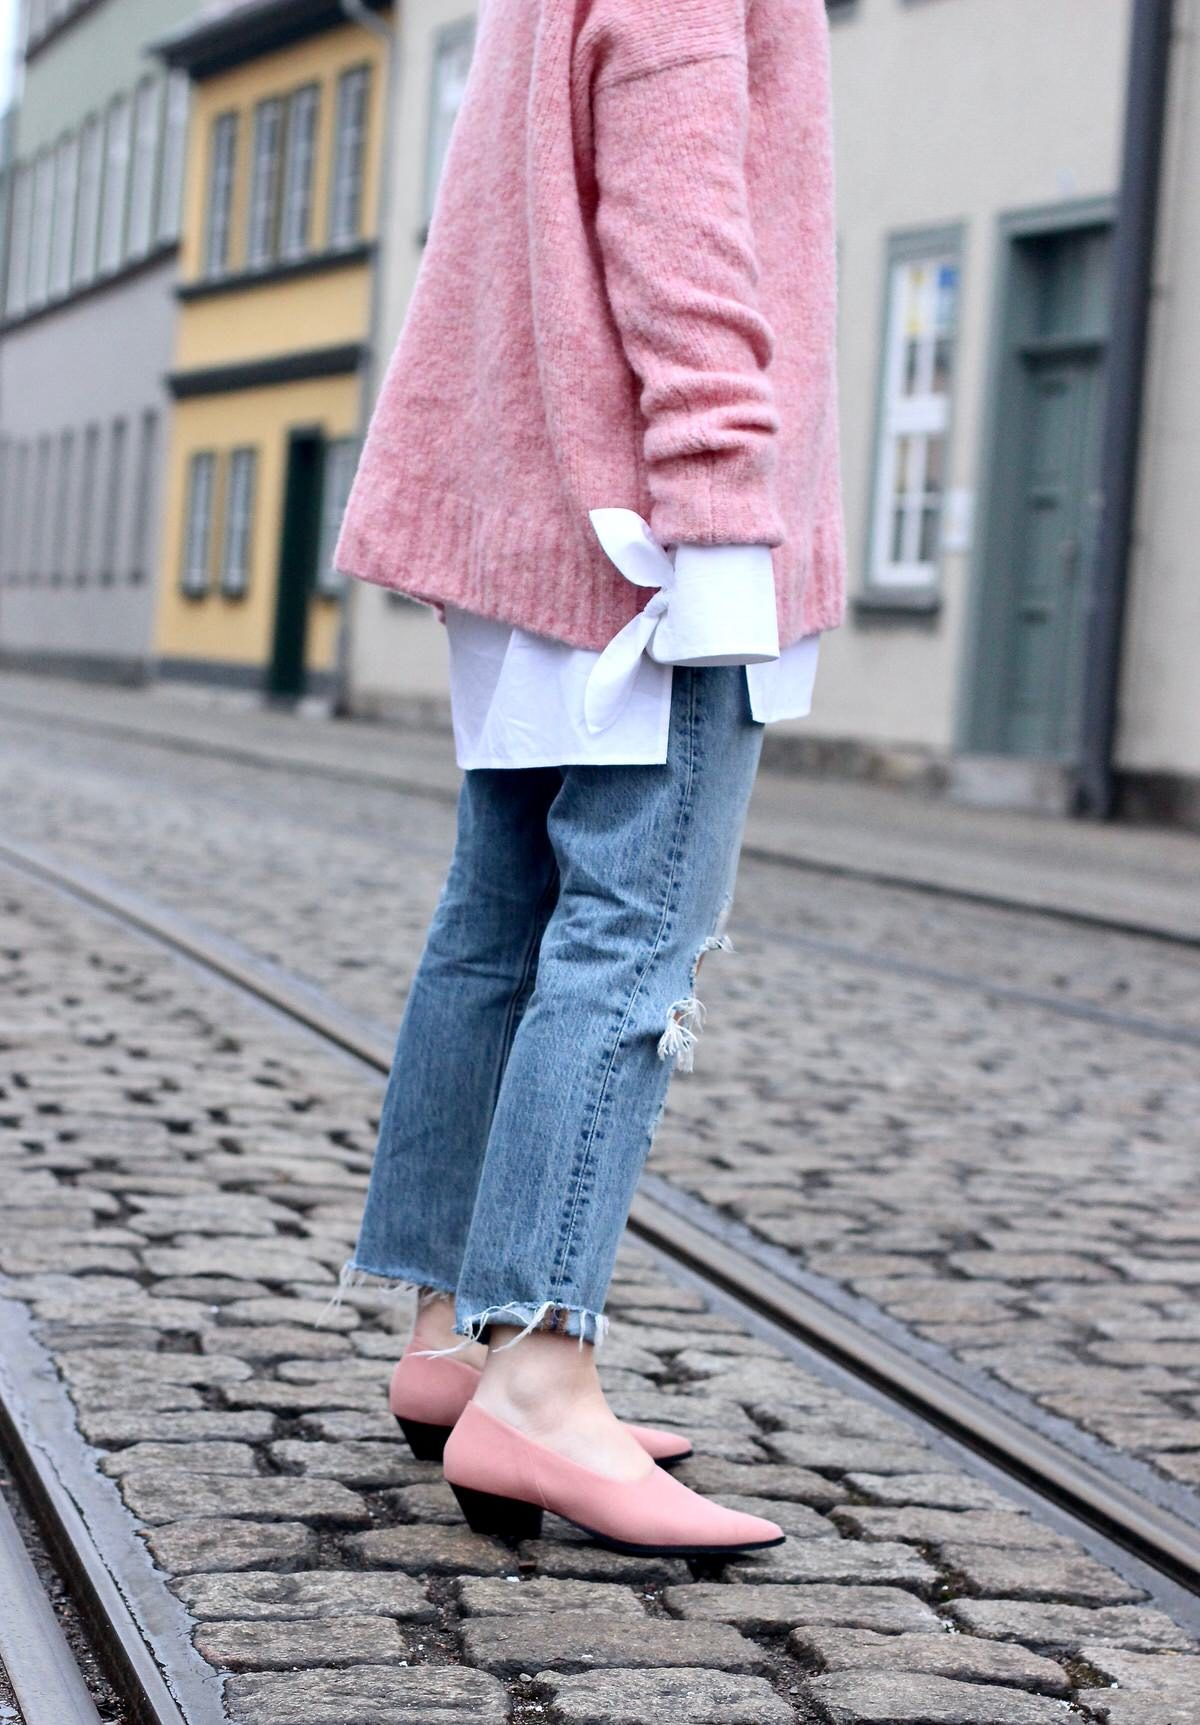 Edited, Levis 501 CT Jeans, Max&Co., Pandora, H&M Pumps